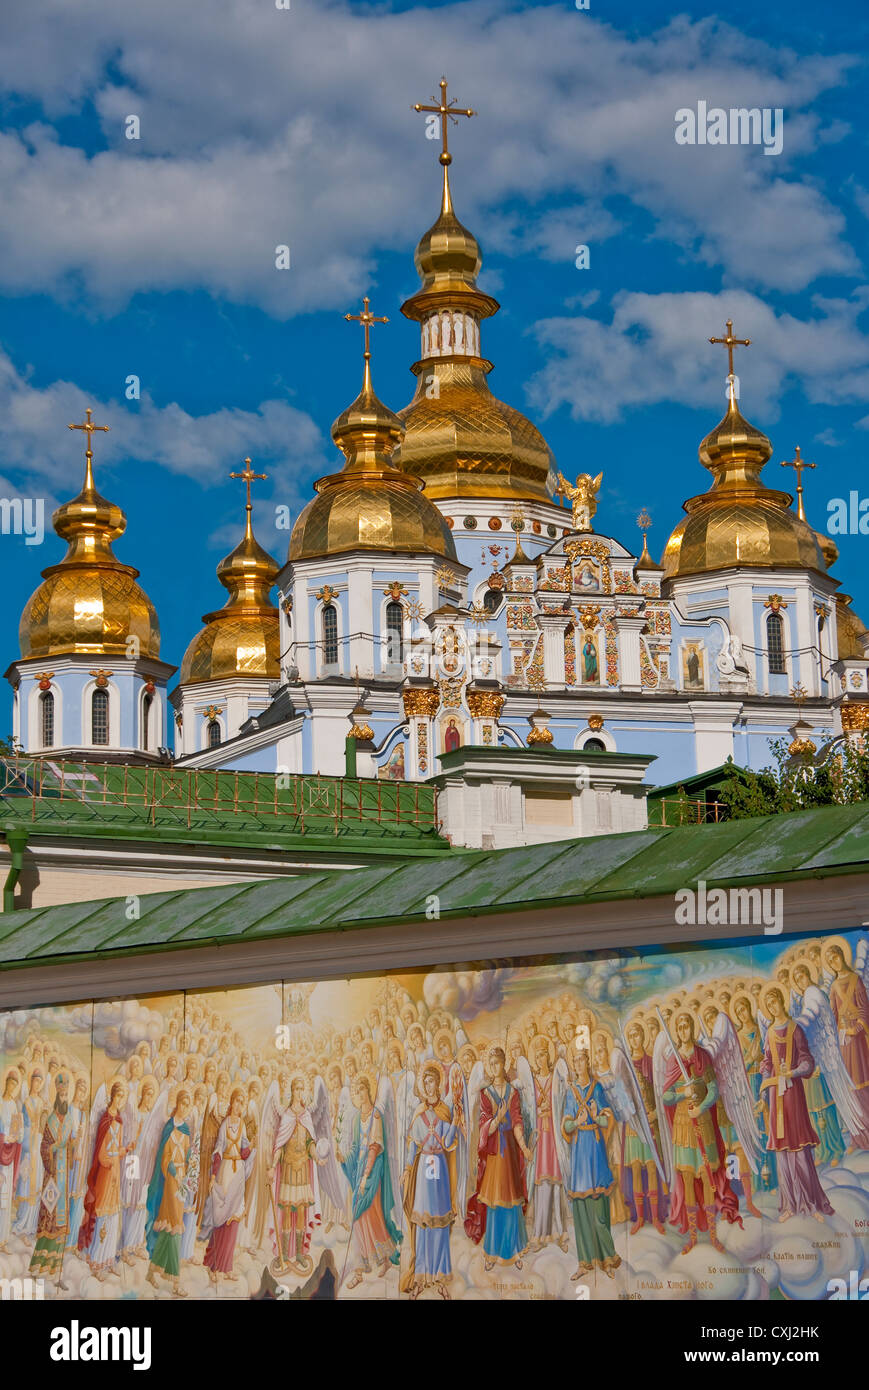 Golden-domed St. Michael's Cathedral in Kiev with mural on wall in foreground. - Stock Image